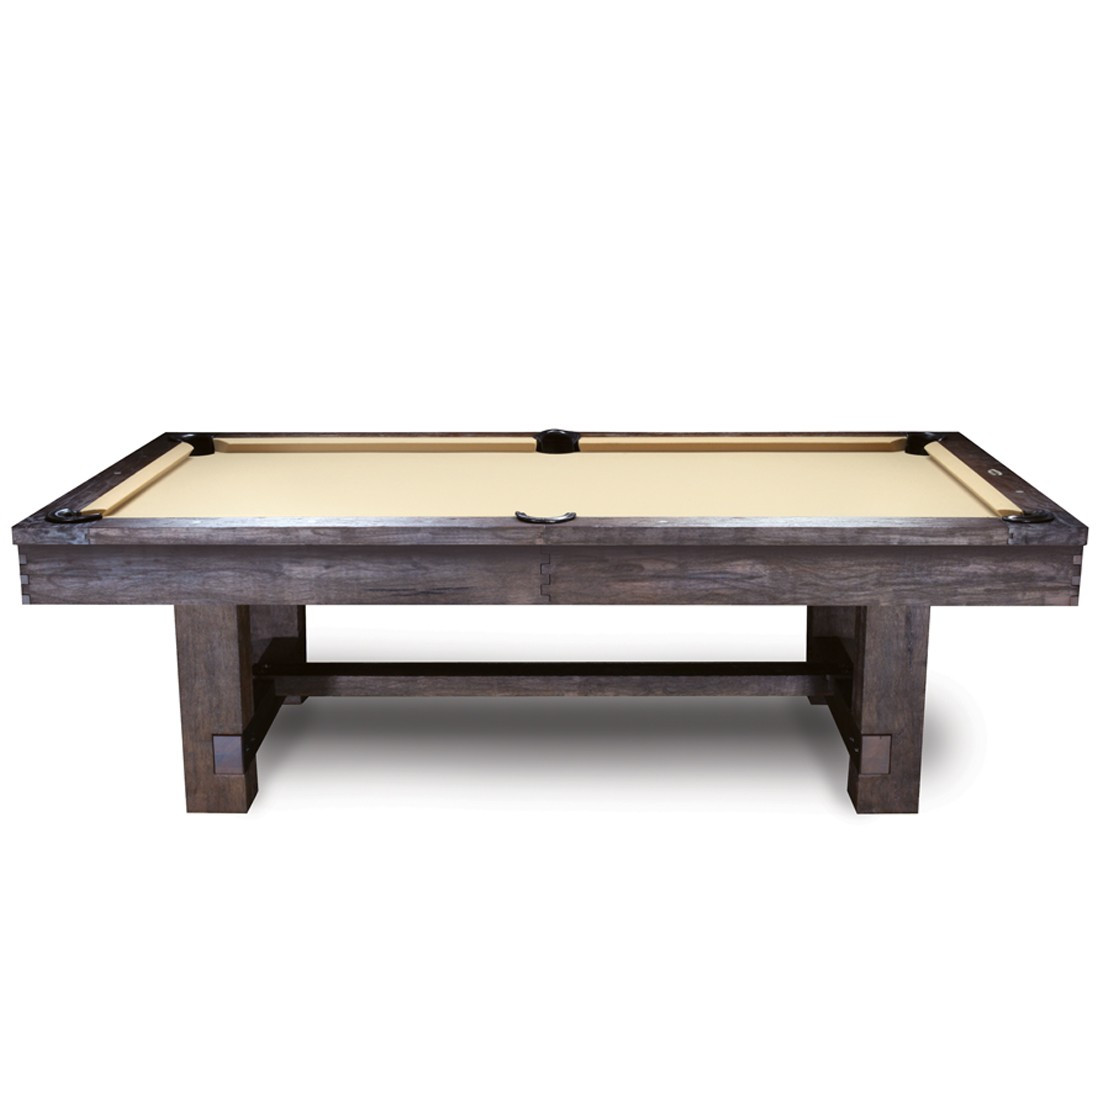 Astonishing Reno Pool Table Reno Billiard Table By Imperial 8 8Ft 8 Foot Weathered Dark Chestnut Imp Ren08Wdc 691037435370 Home Interior And Landscaping Sapresignezvosmurscom